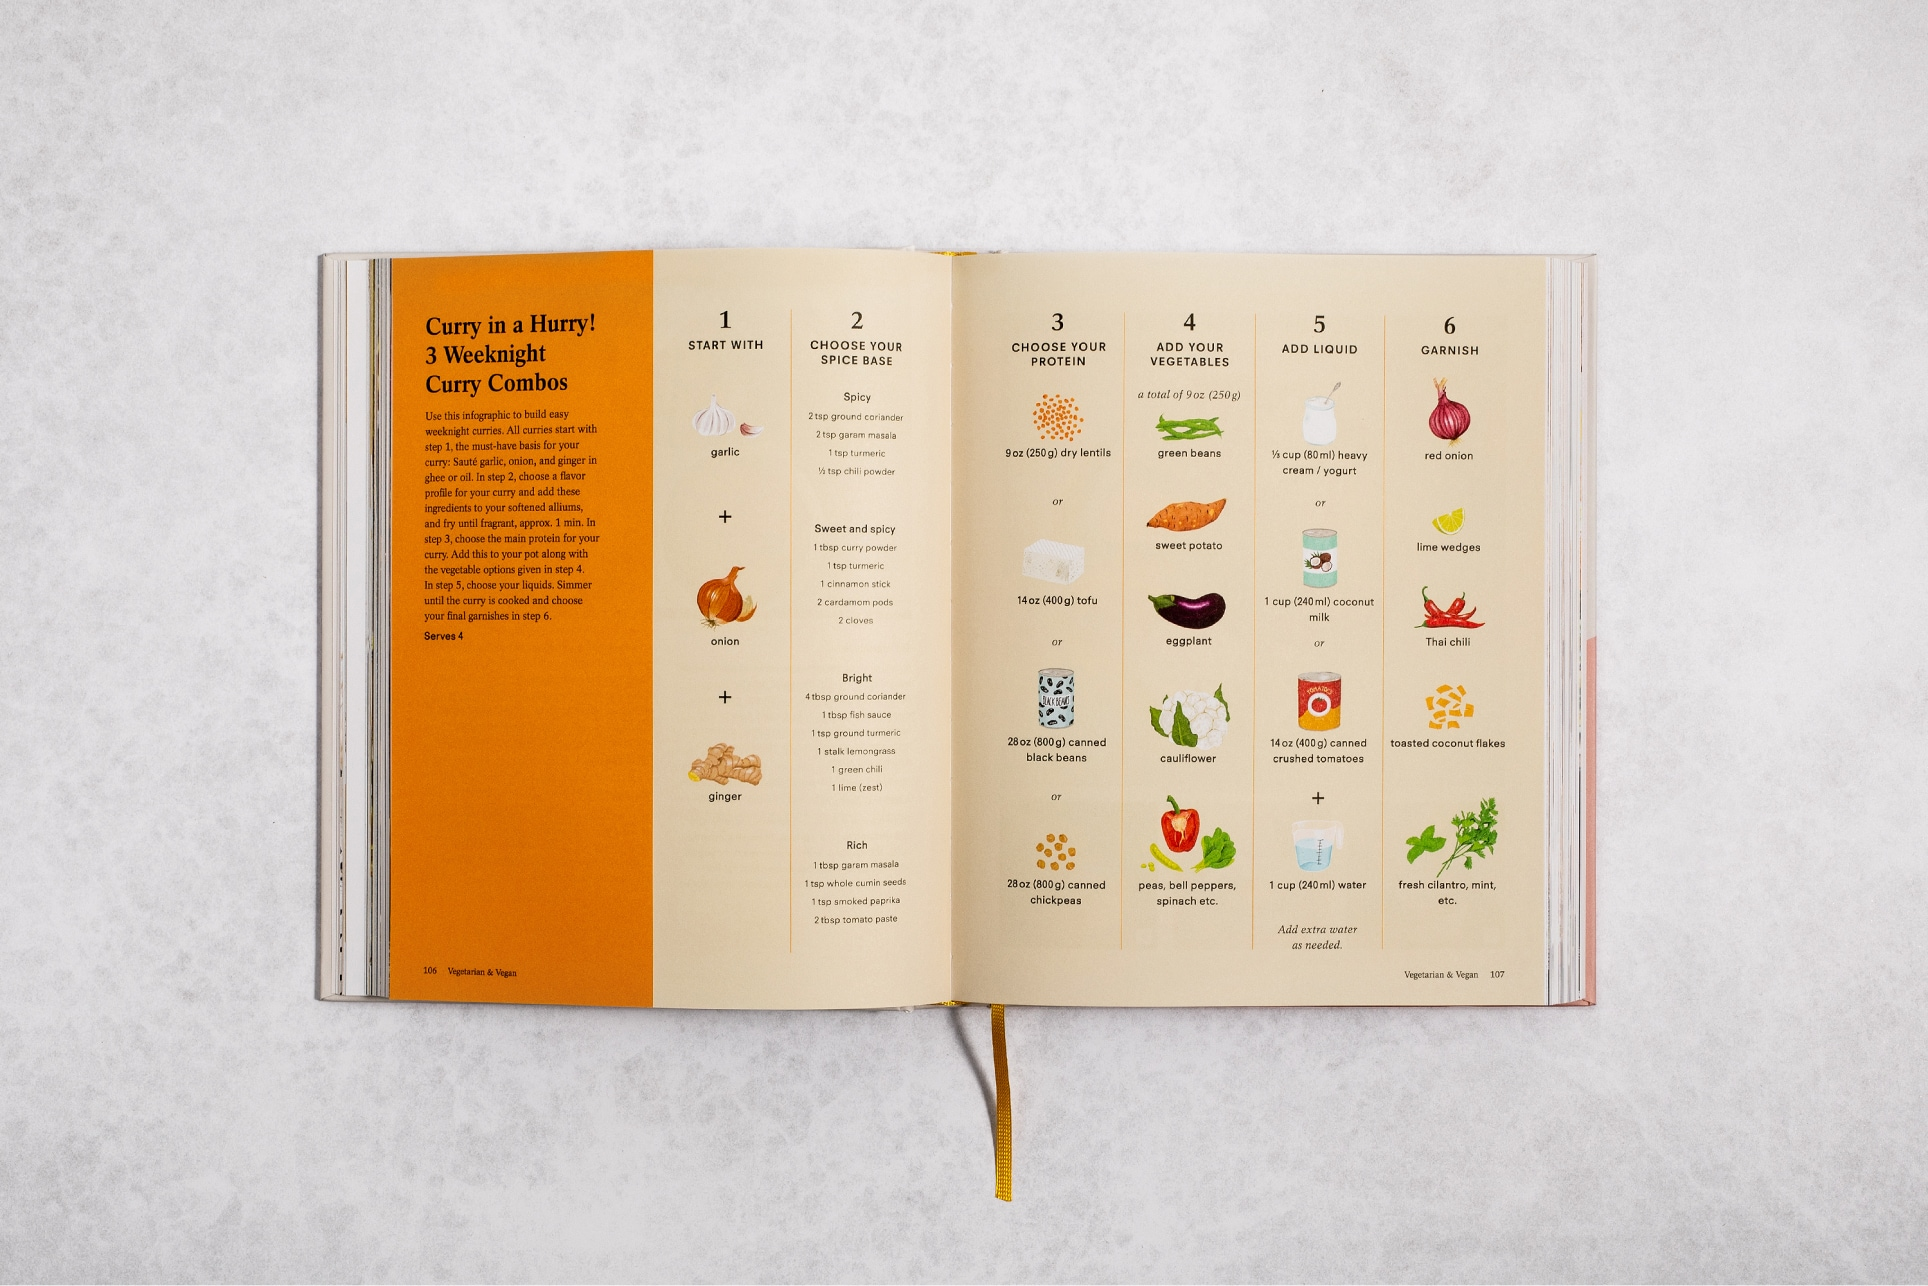 Pages of a cookbook showing how to make 3 curry combos